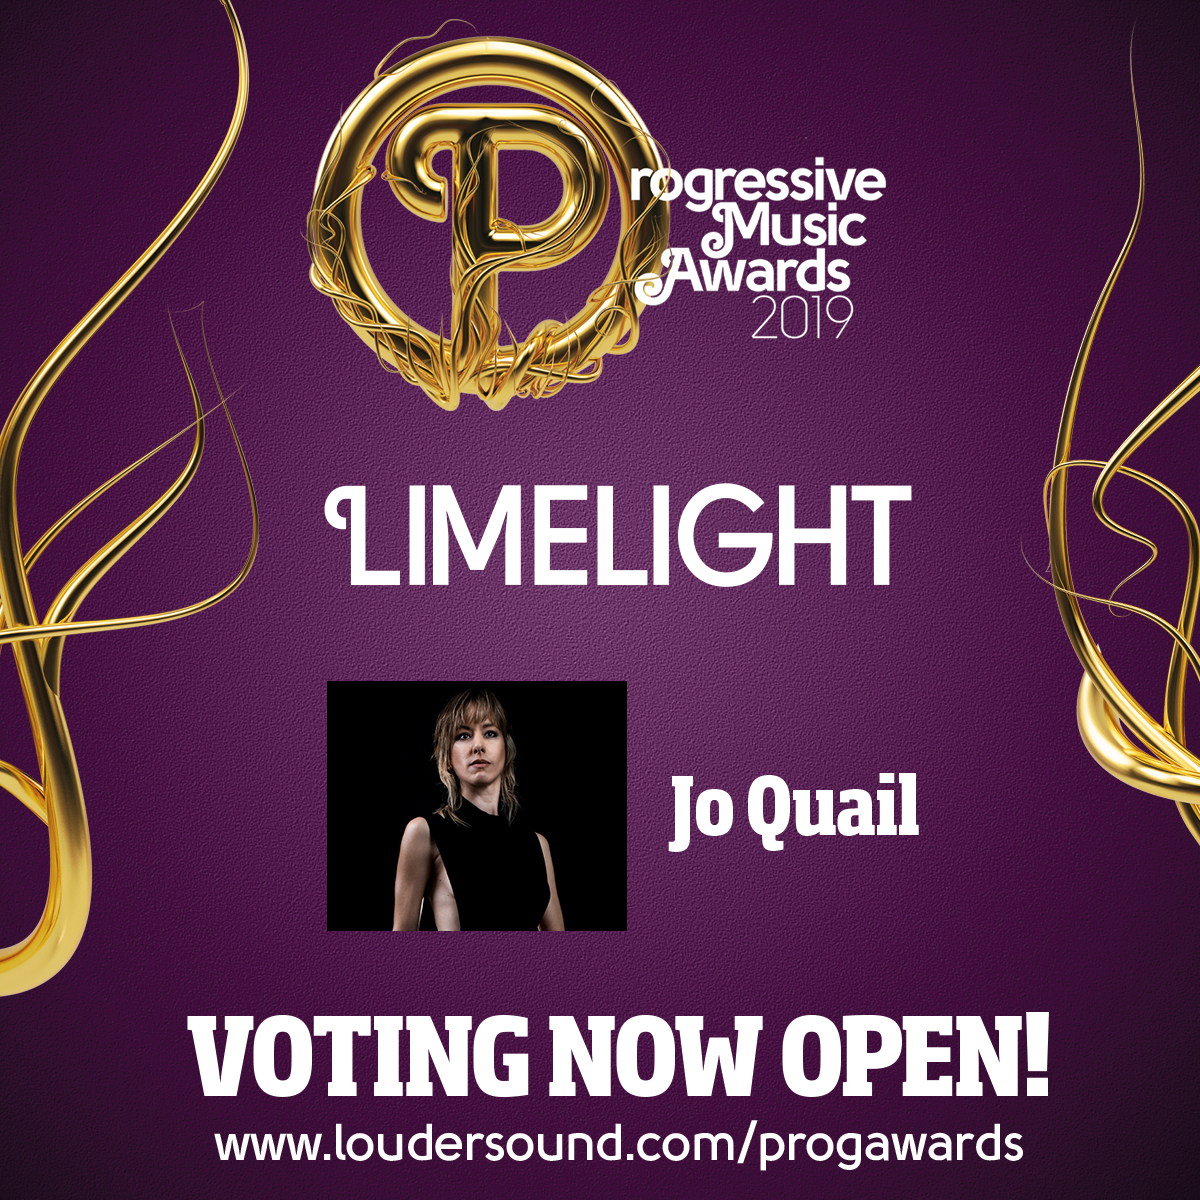 Prog Limelight Award 2019! I'm so honoured to be included in this list. Please vote here www.loudersound.com/progawards